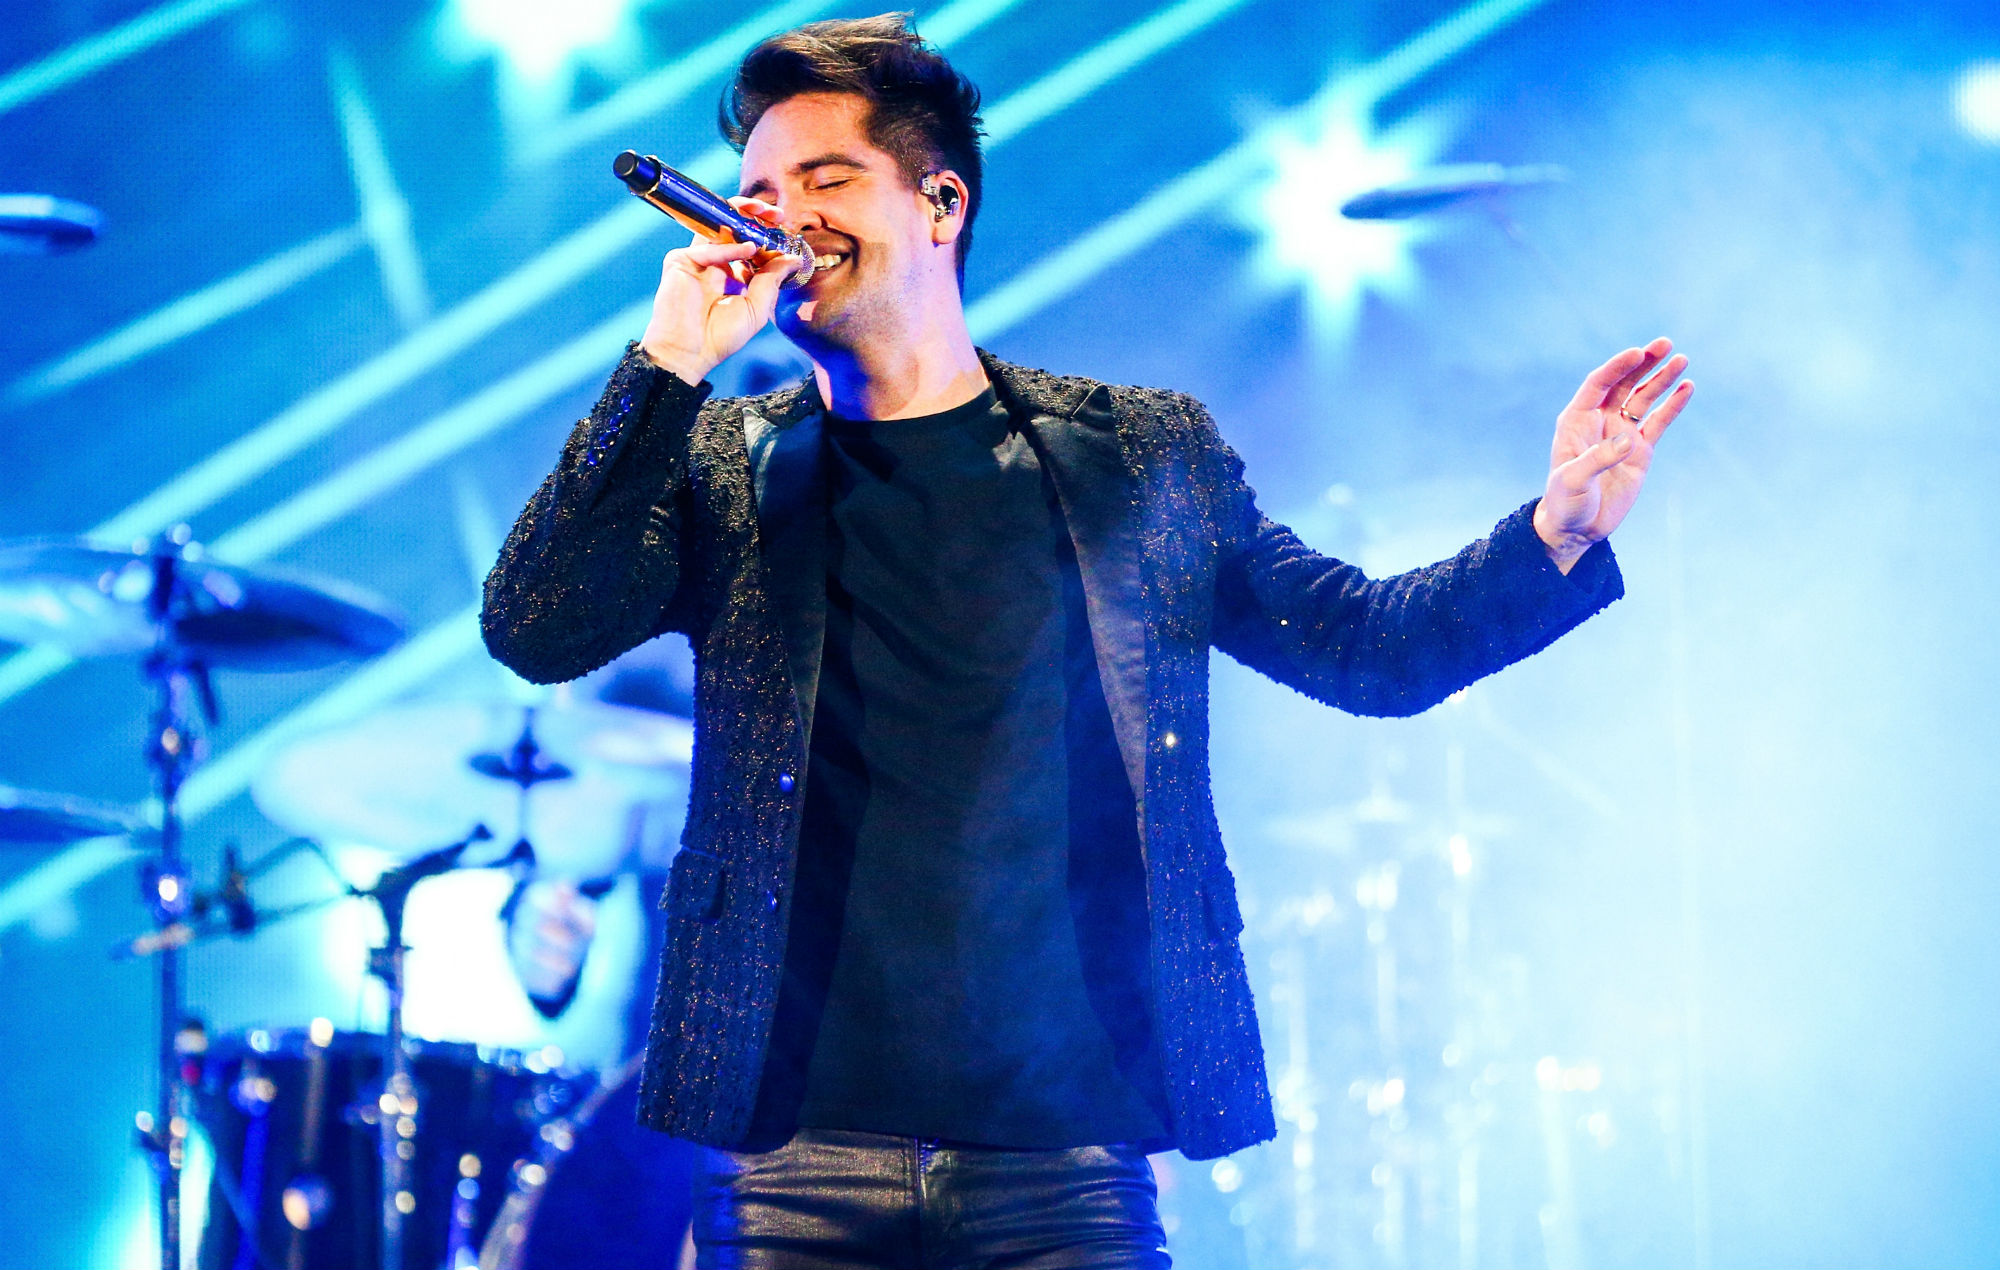 NME Festival blog: Watch Panic! At The Disco's stunning 'Bohemian Rhapsody' cover at the American Music Awards